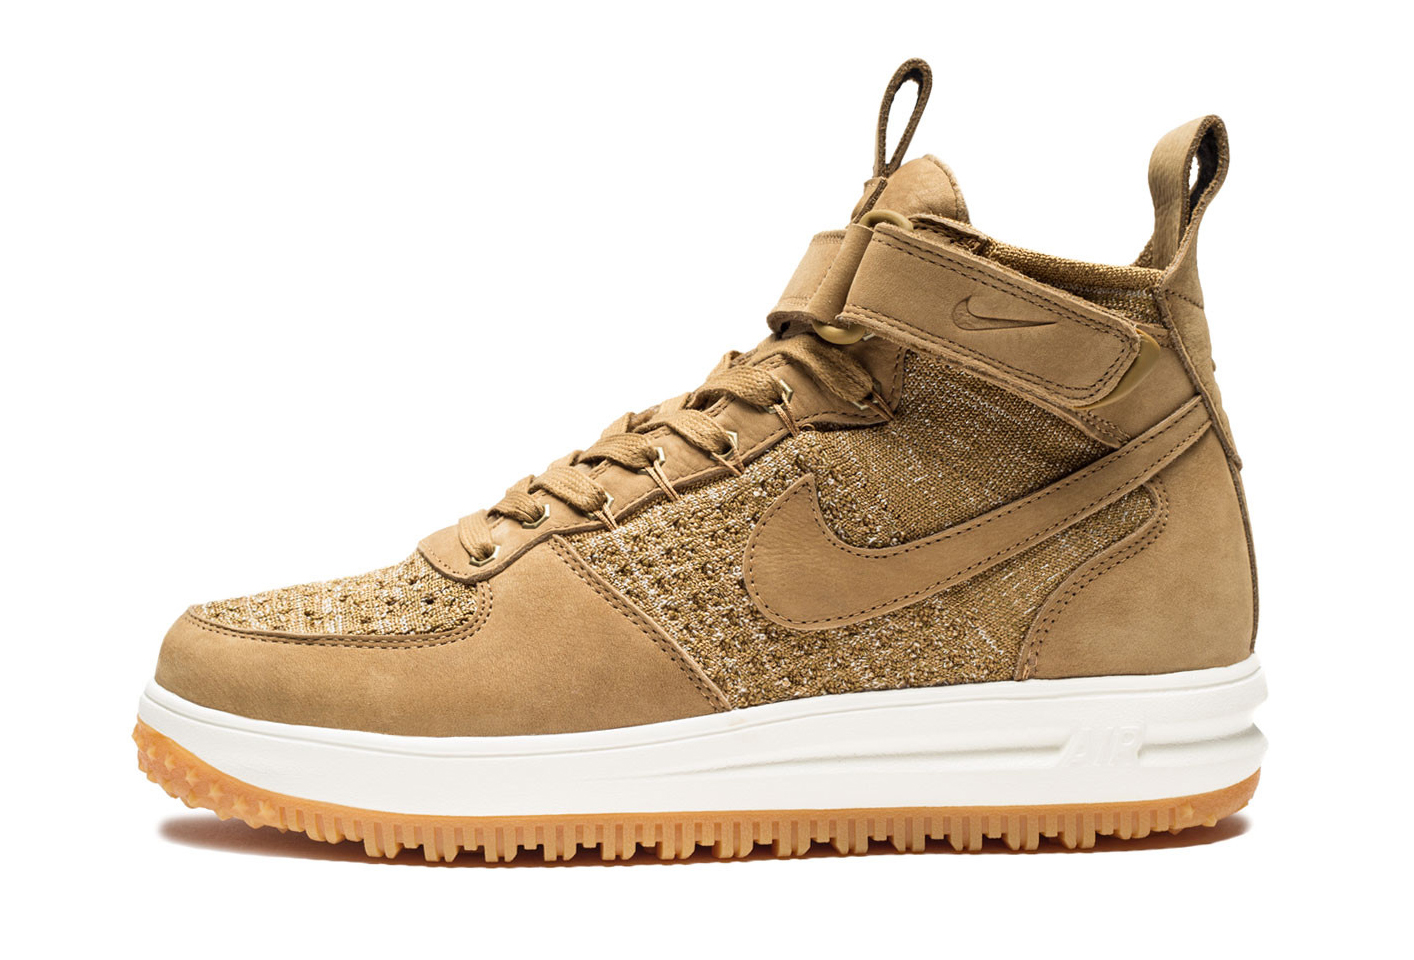 b1ed42eeff Wheat Nike Lunar Force 1 Flyknit Boot | Sole Collector